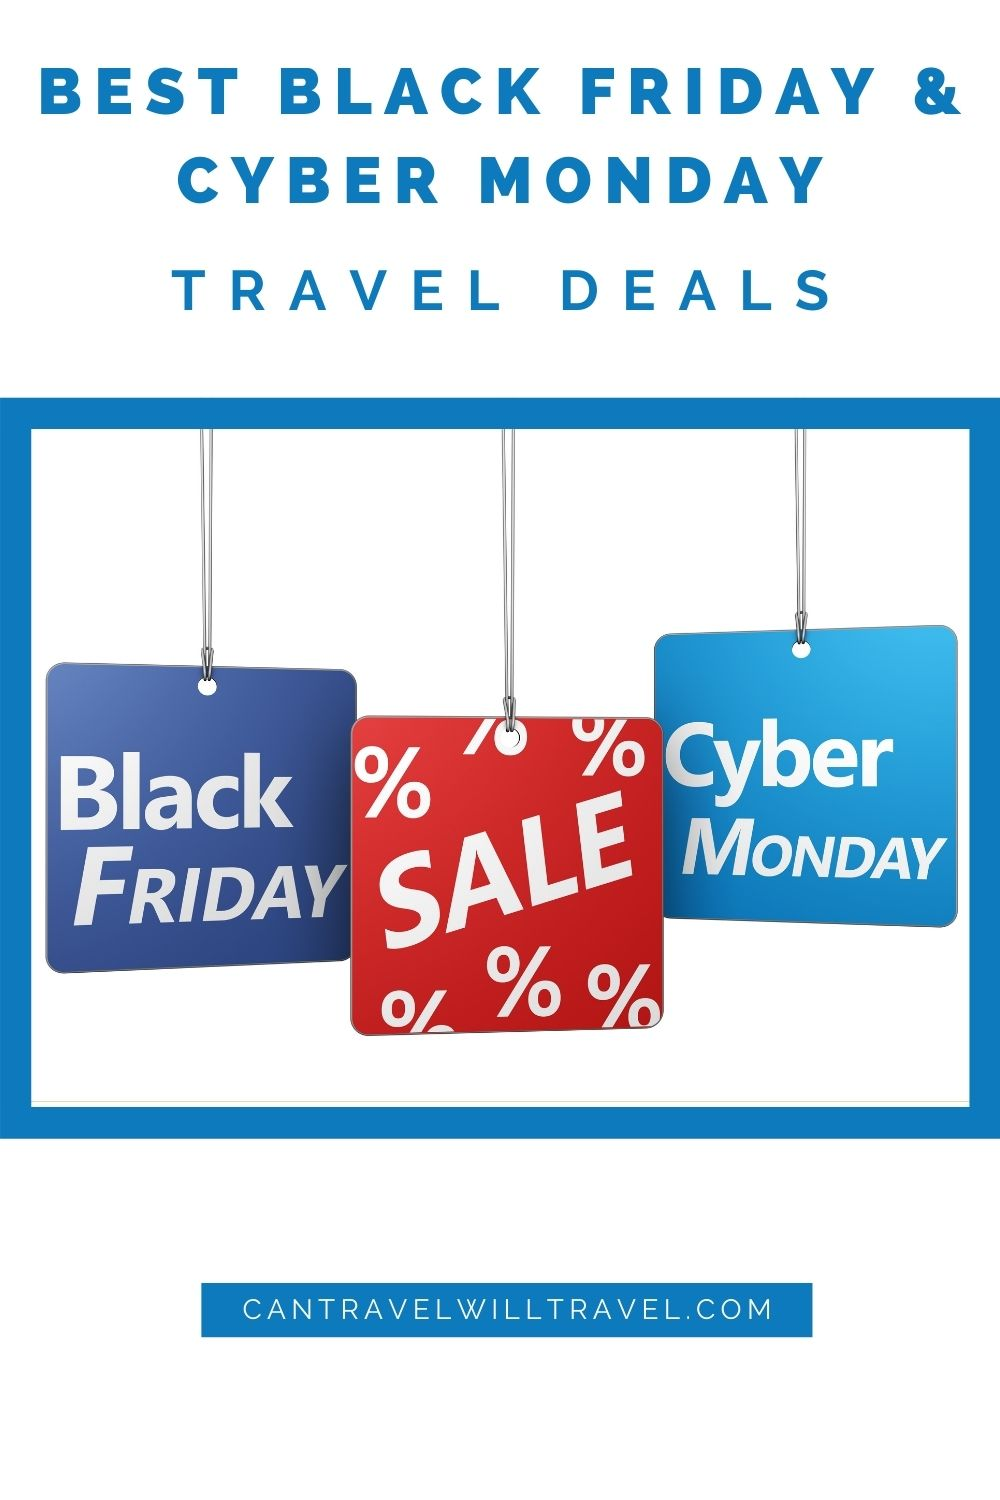 Best Black Friday Travel Deals and Cyber Monday Travel Deals